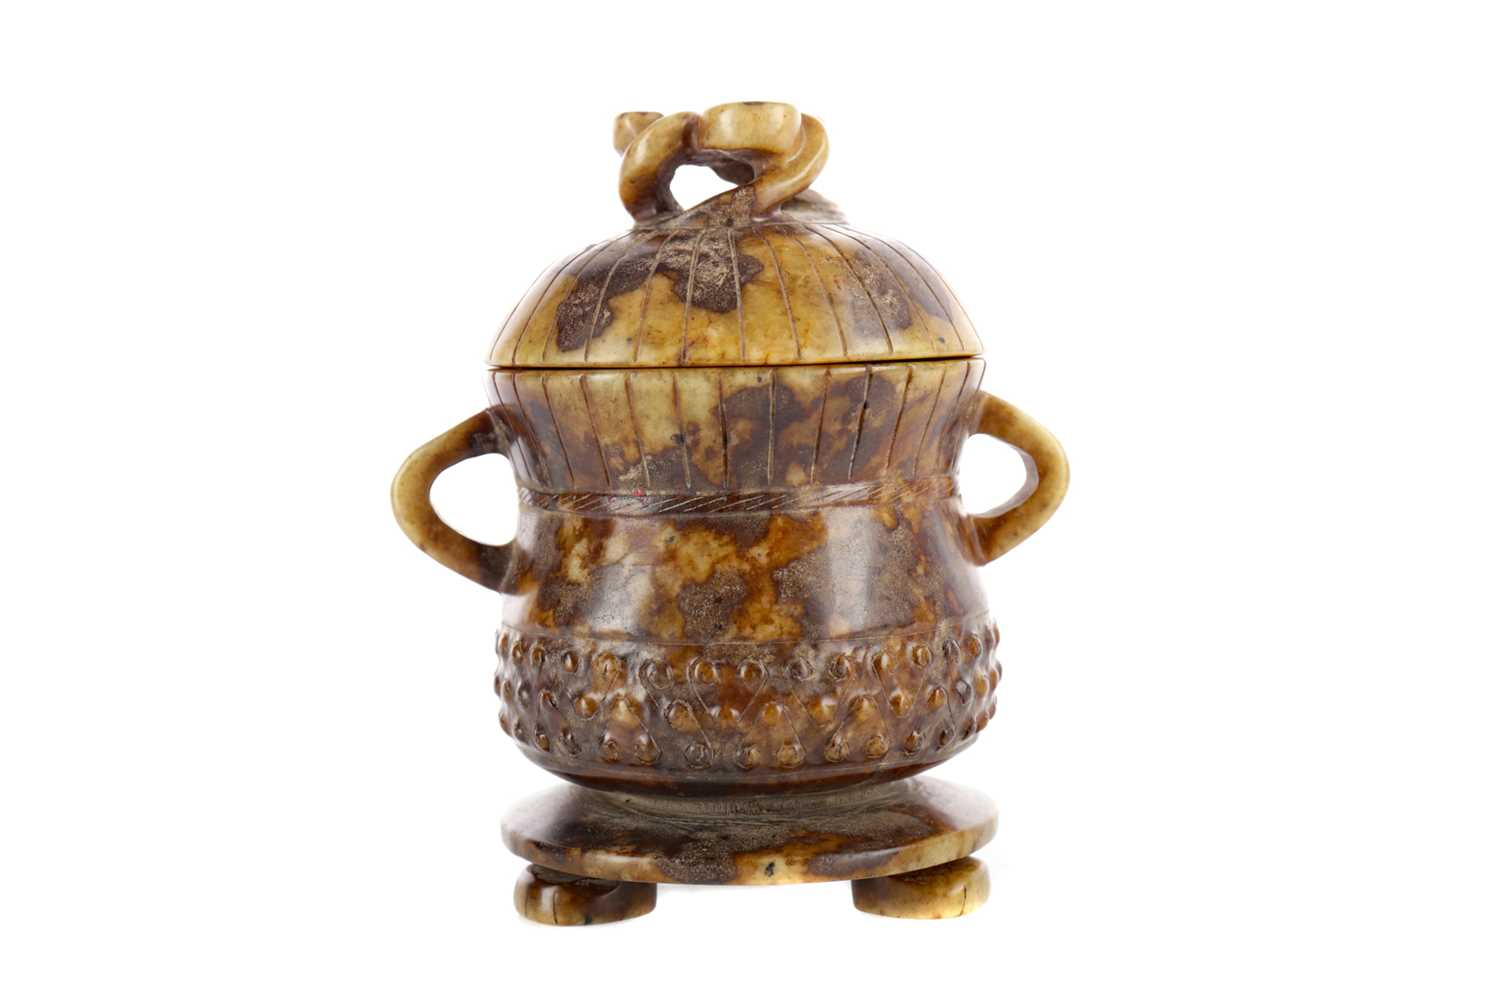 Lot 857 - A 20TH CENTURY CHINESE JADE LIDDED VESSEL